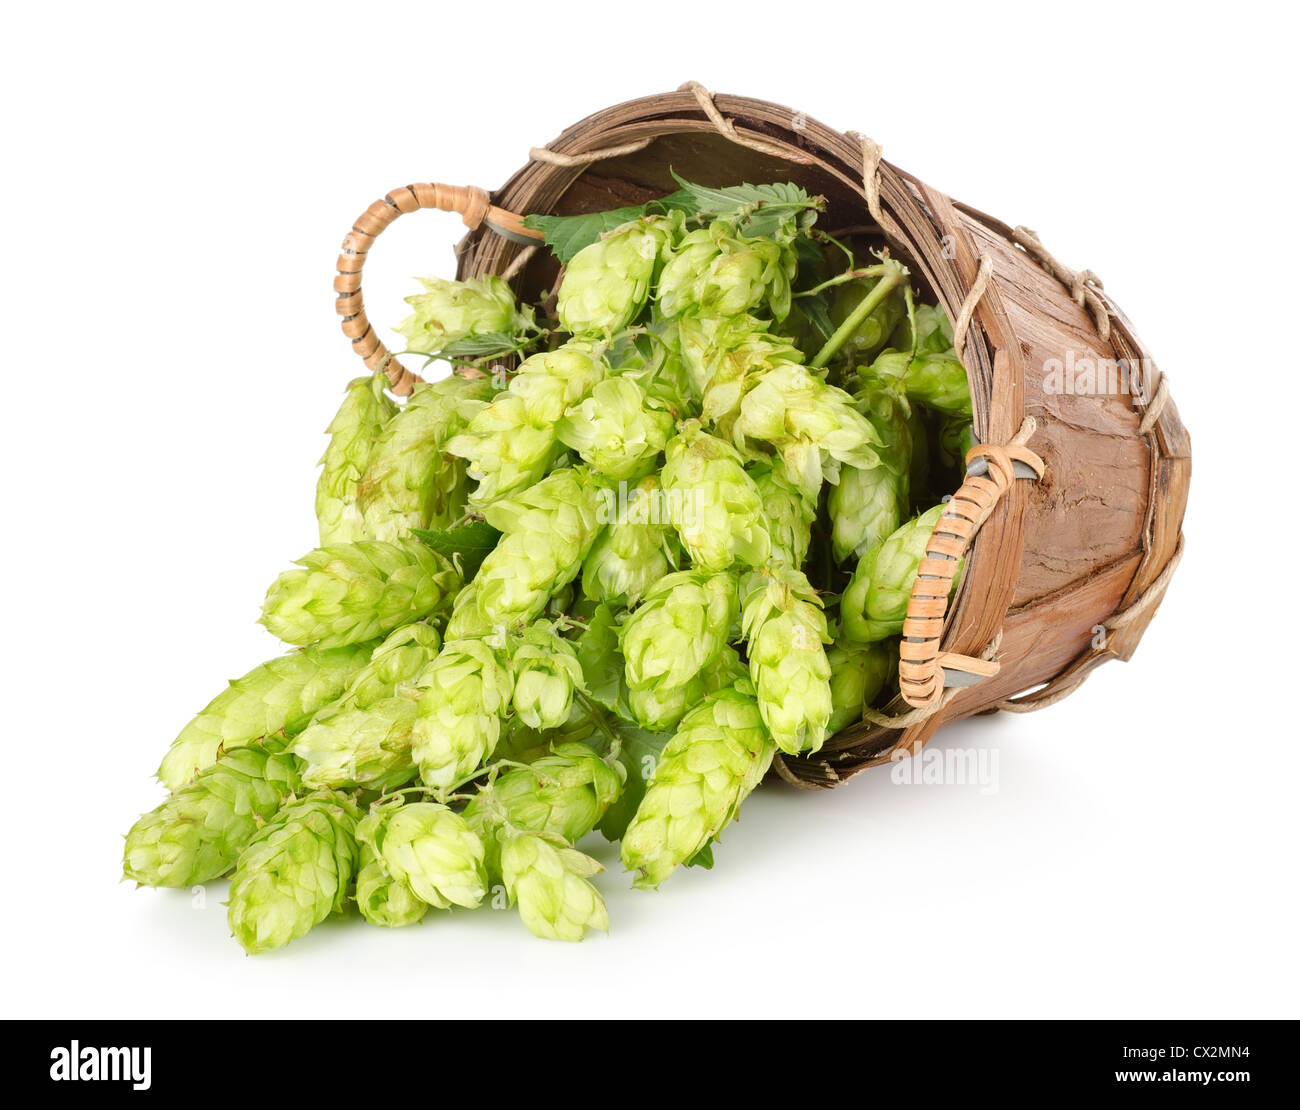 Hops in a wooden basket isolated on white background - Stock Image